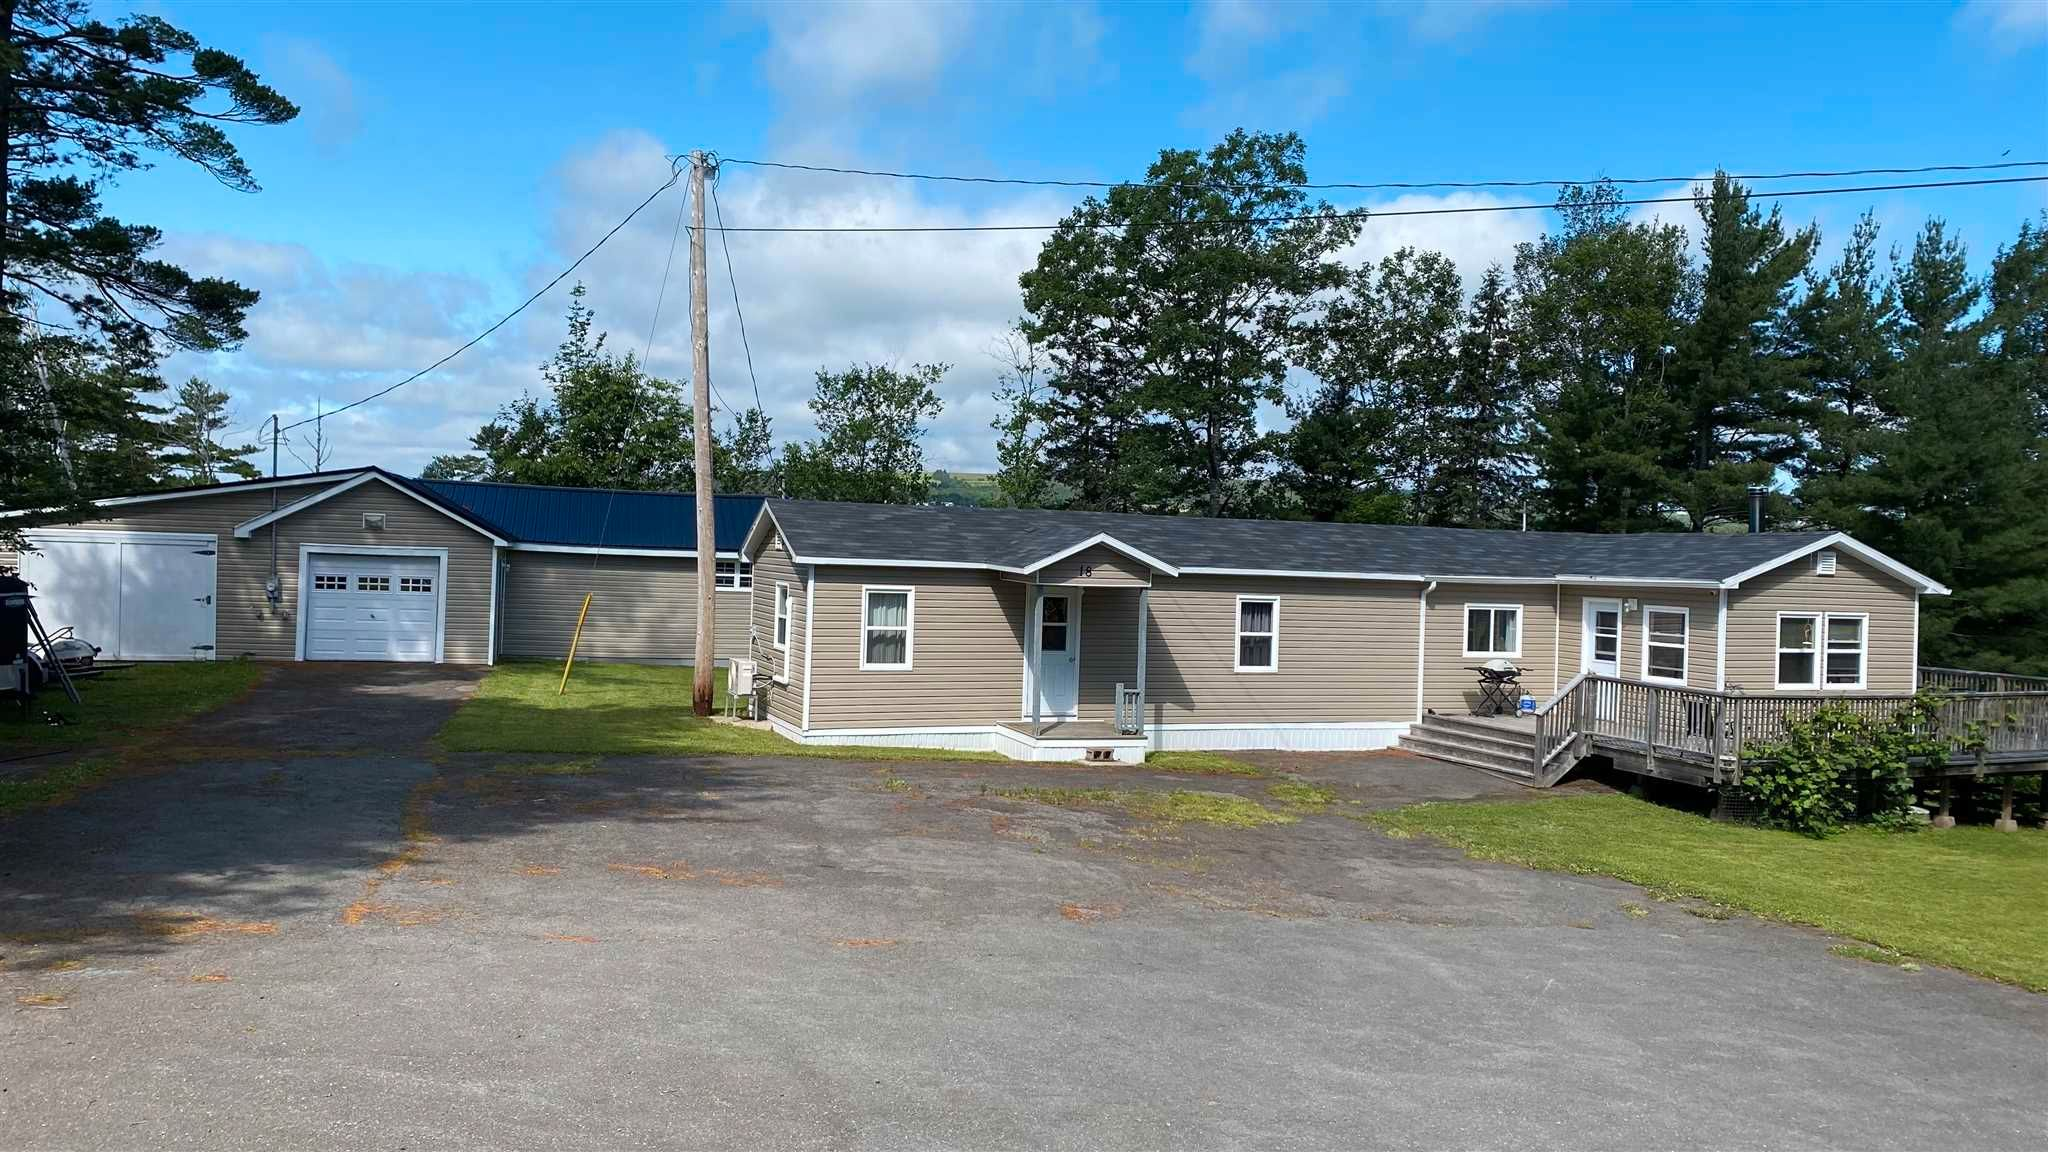 Main Photo: 1 Old School Lane in Alma: 108-Rural Pictou County Residential for sale (Northern Region)  : MLS®# 202117525